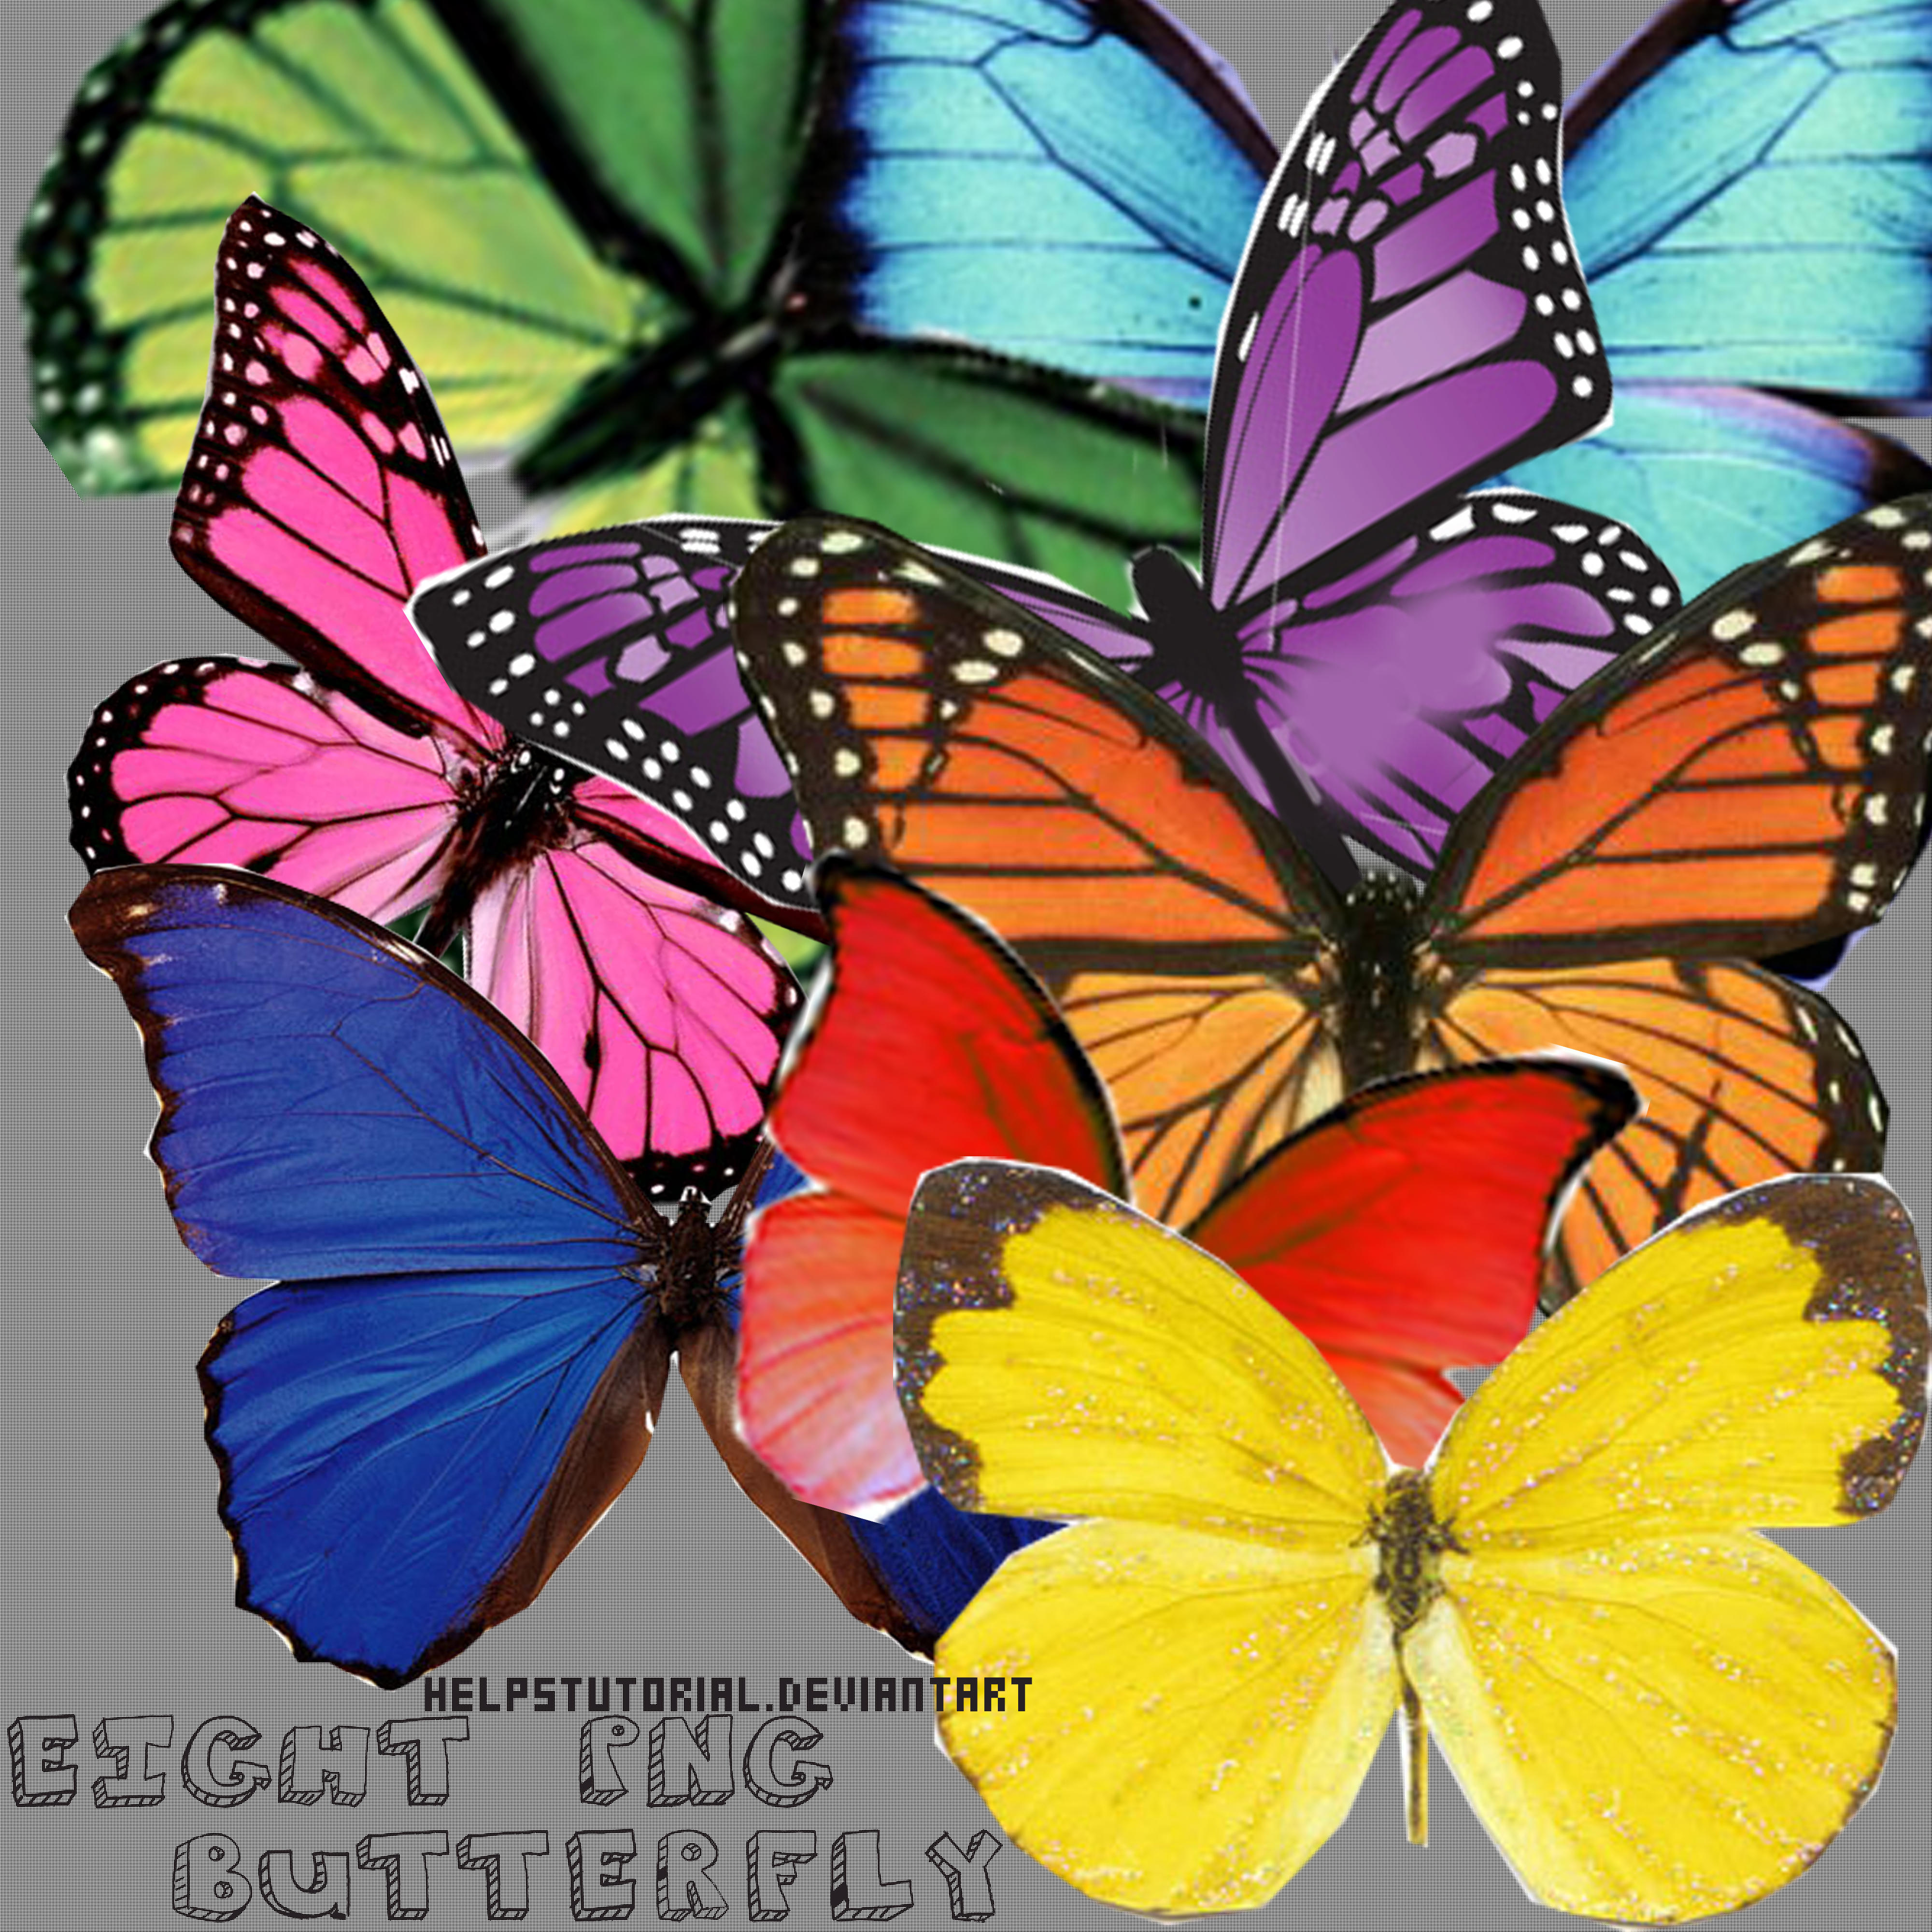 Eight Butterfly PNG- by helpstutorial